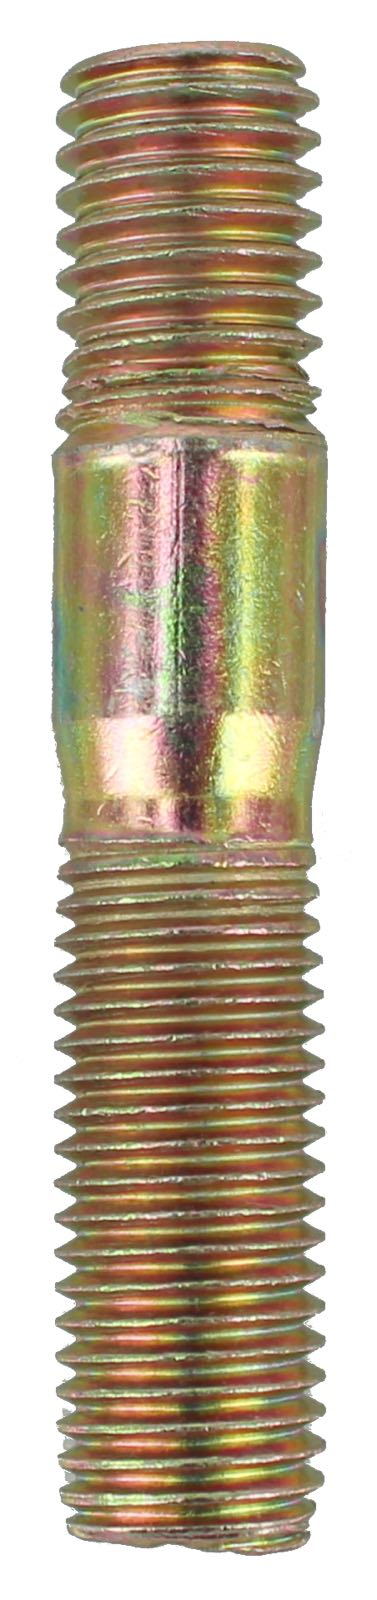 STUD M10 X 50 1.5 SHORT END 1.25 LONG END (QTY 10)